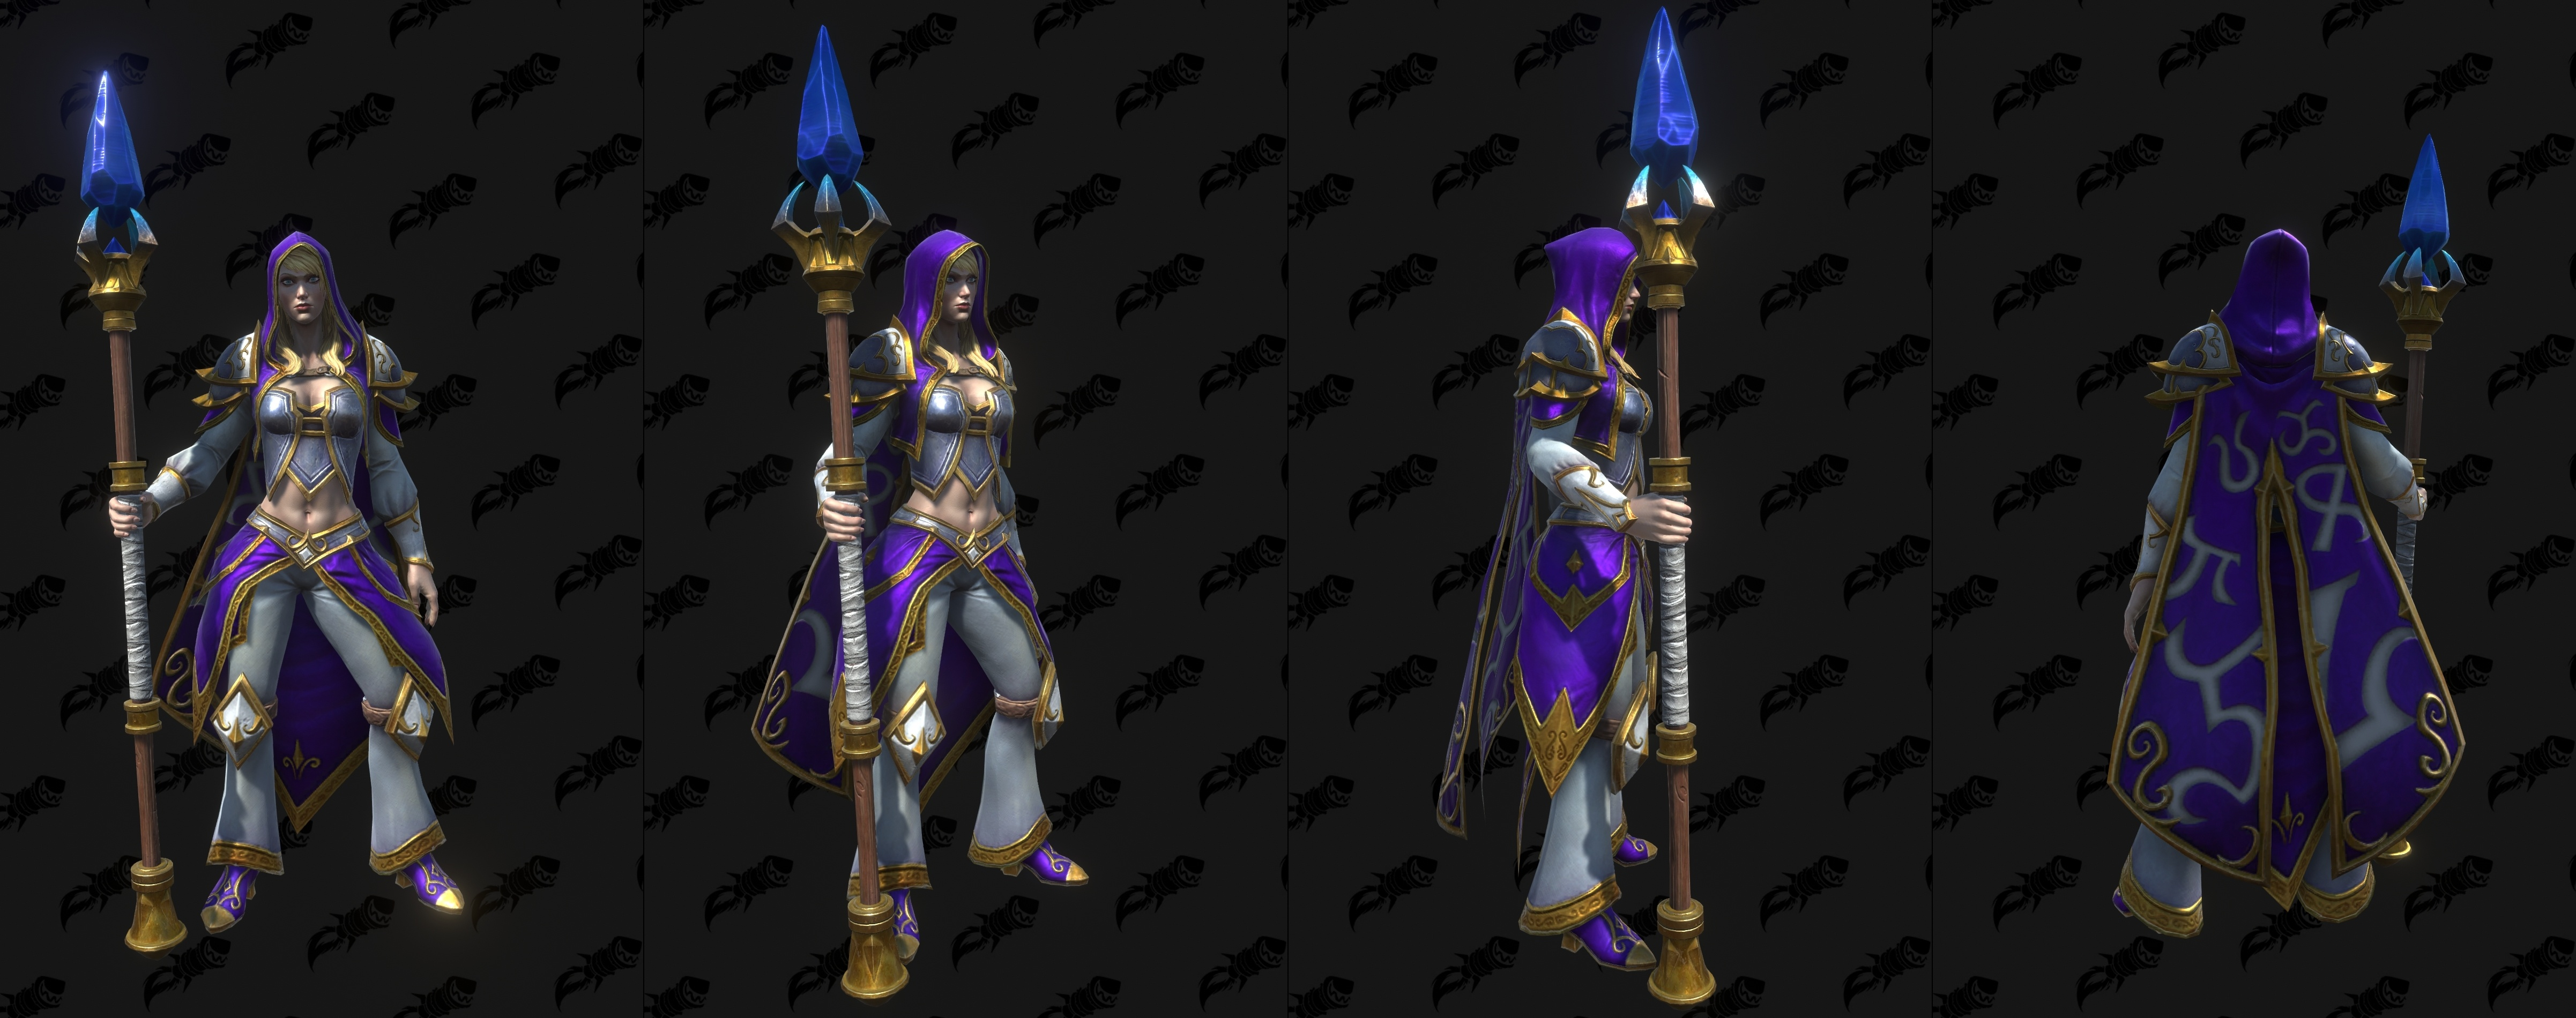 Warcraft Iii Reforged Human Models Arthas With Frostmourne